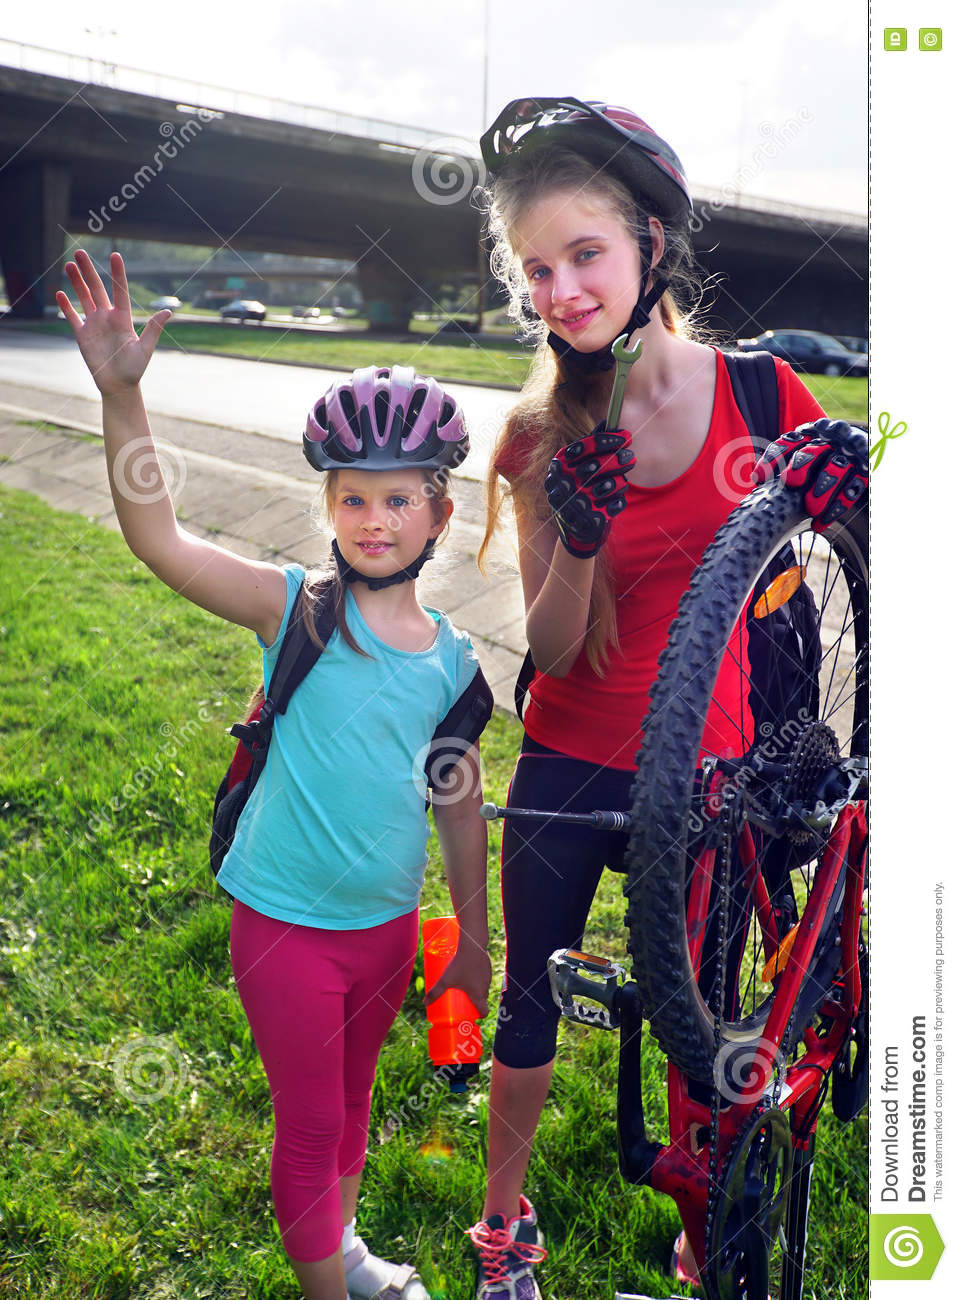 Girls children cycling pump up bicycle tire.